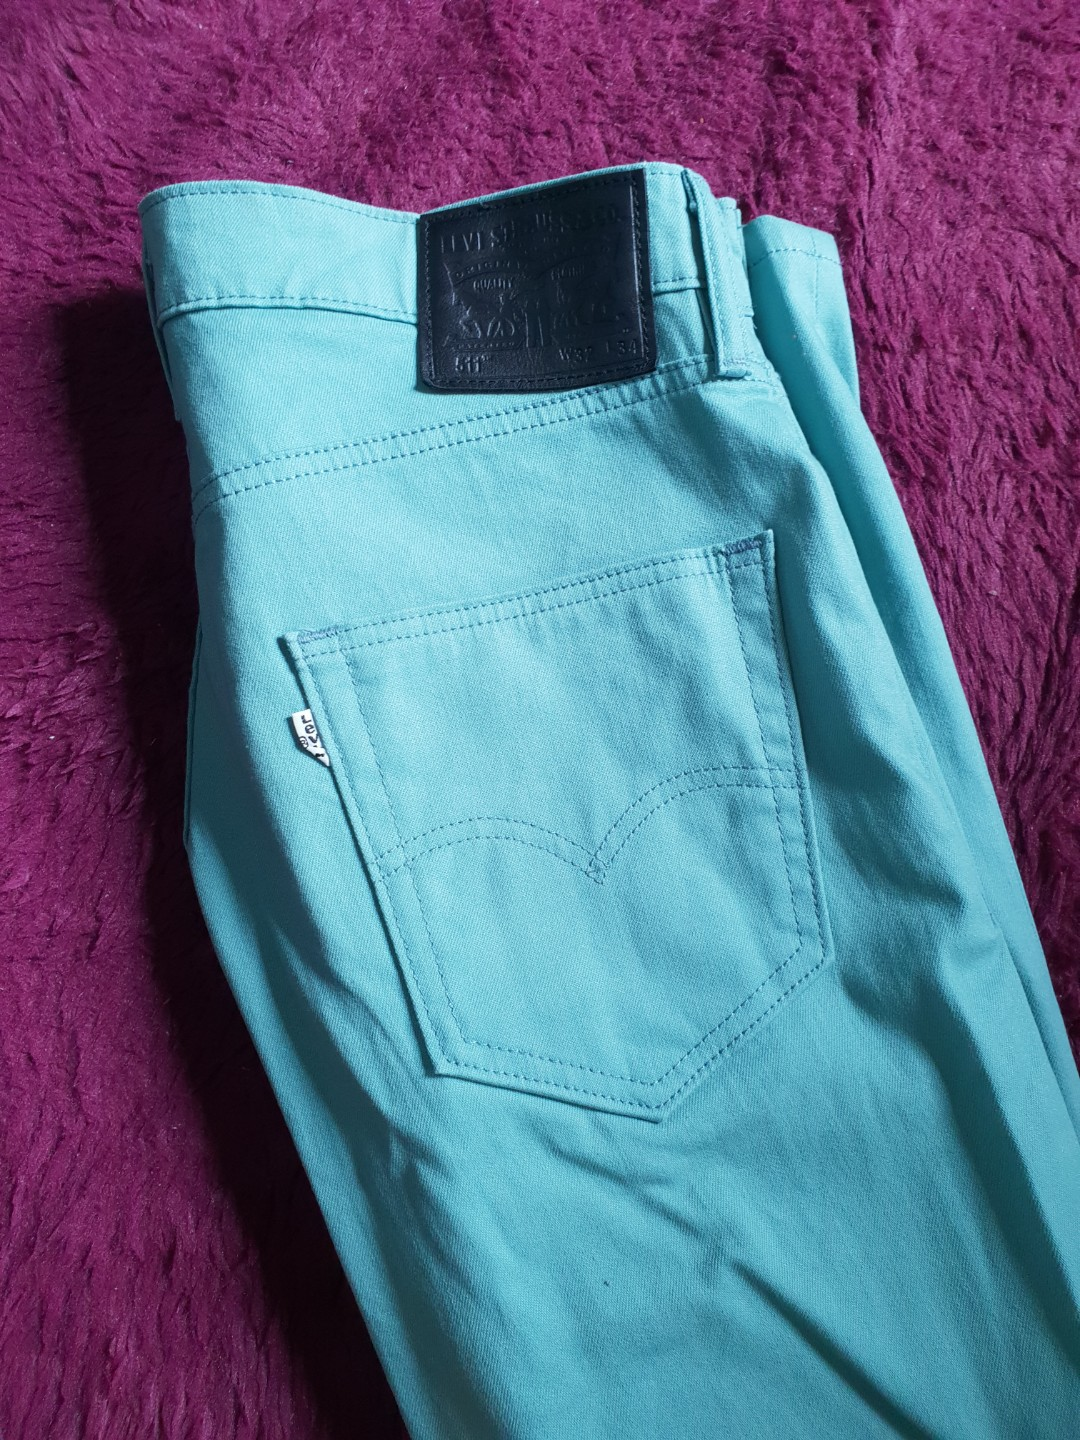 370ed3d3aaf Levis 511 Slim Jeans, Men's Fashion, Clothes, Bottoms on Carousell